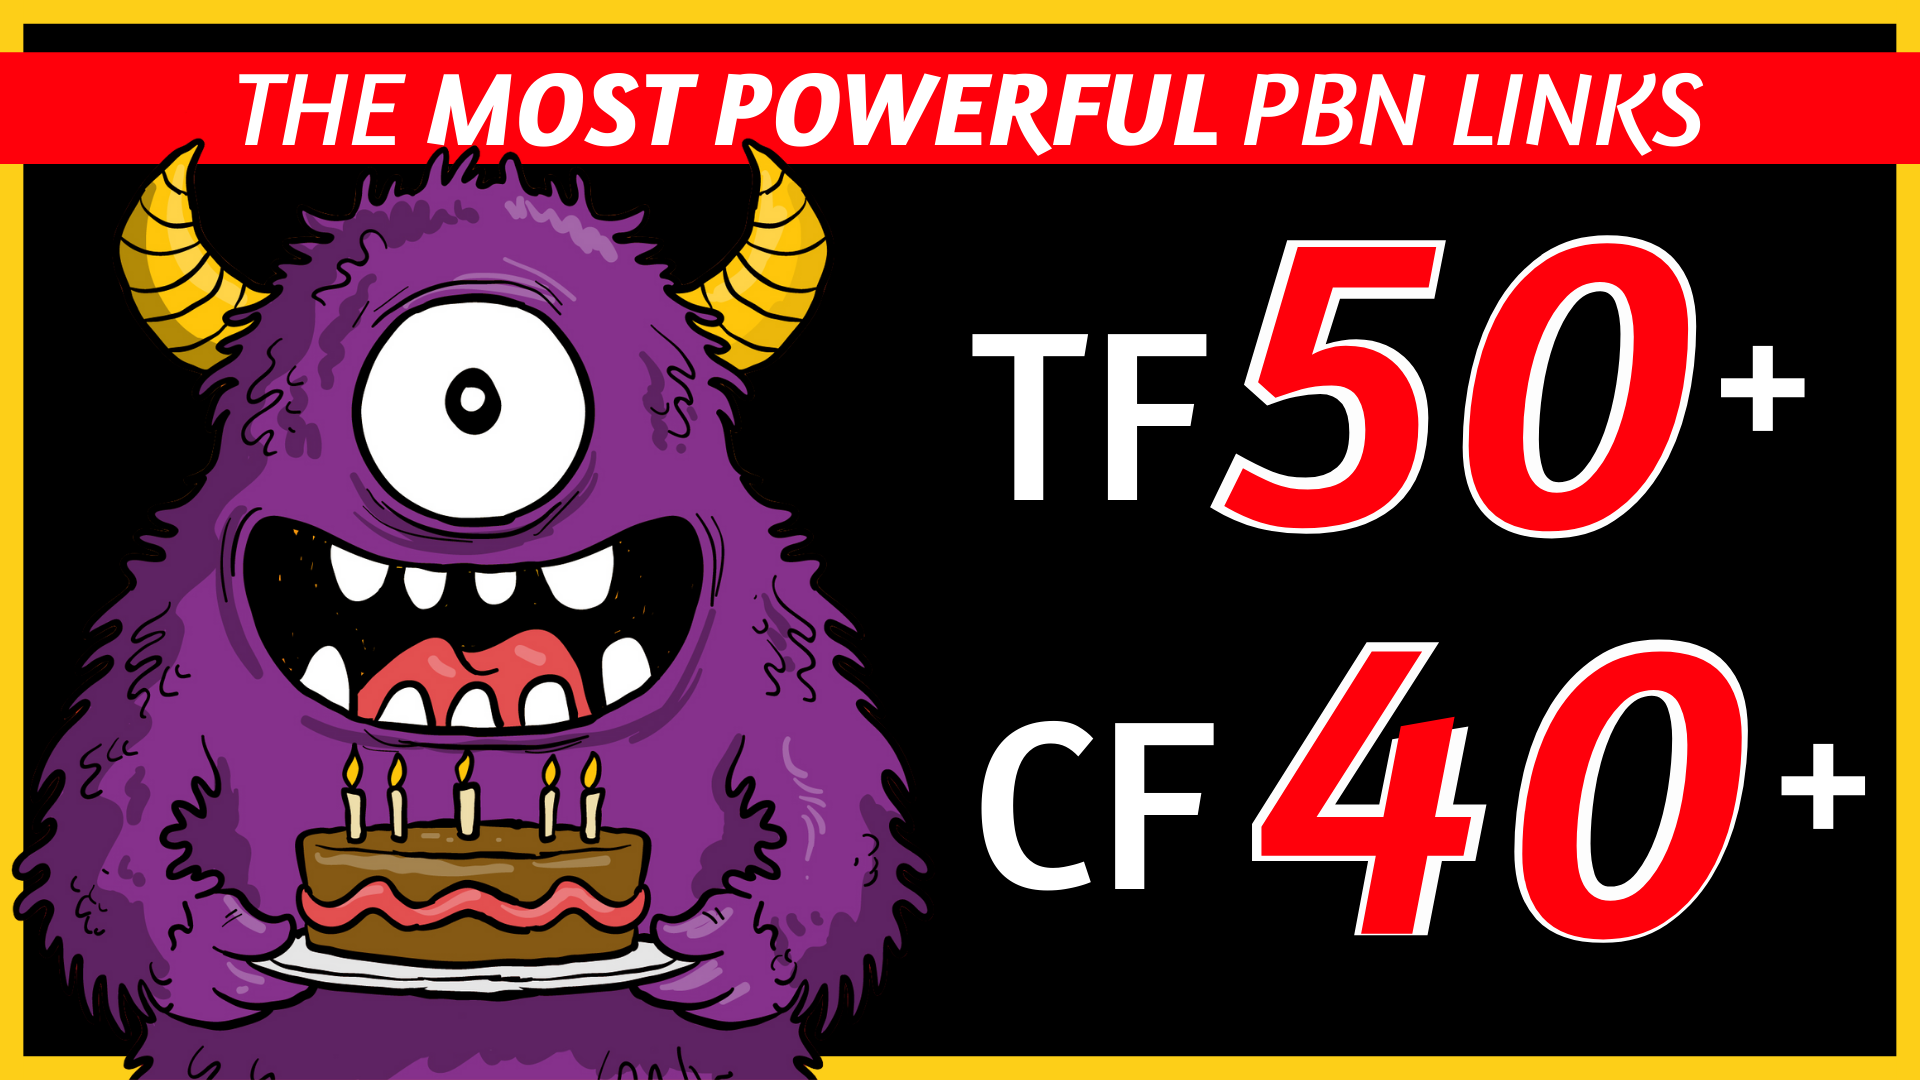 5 of the Most Powerful Premium PBN links on Seocheckout